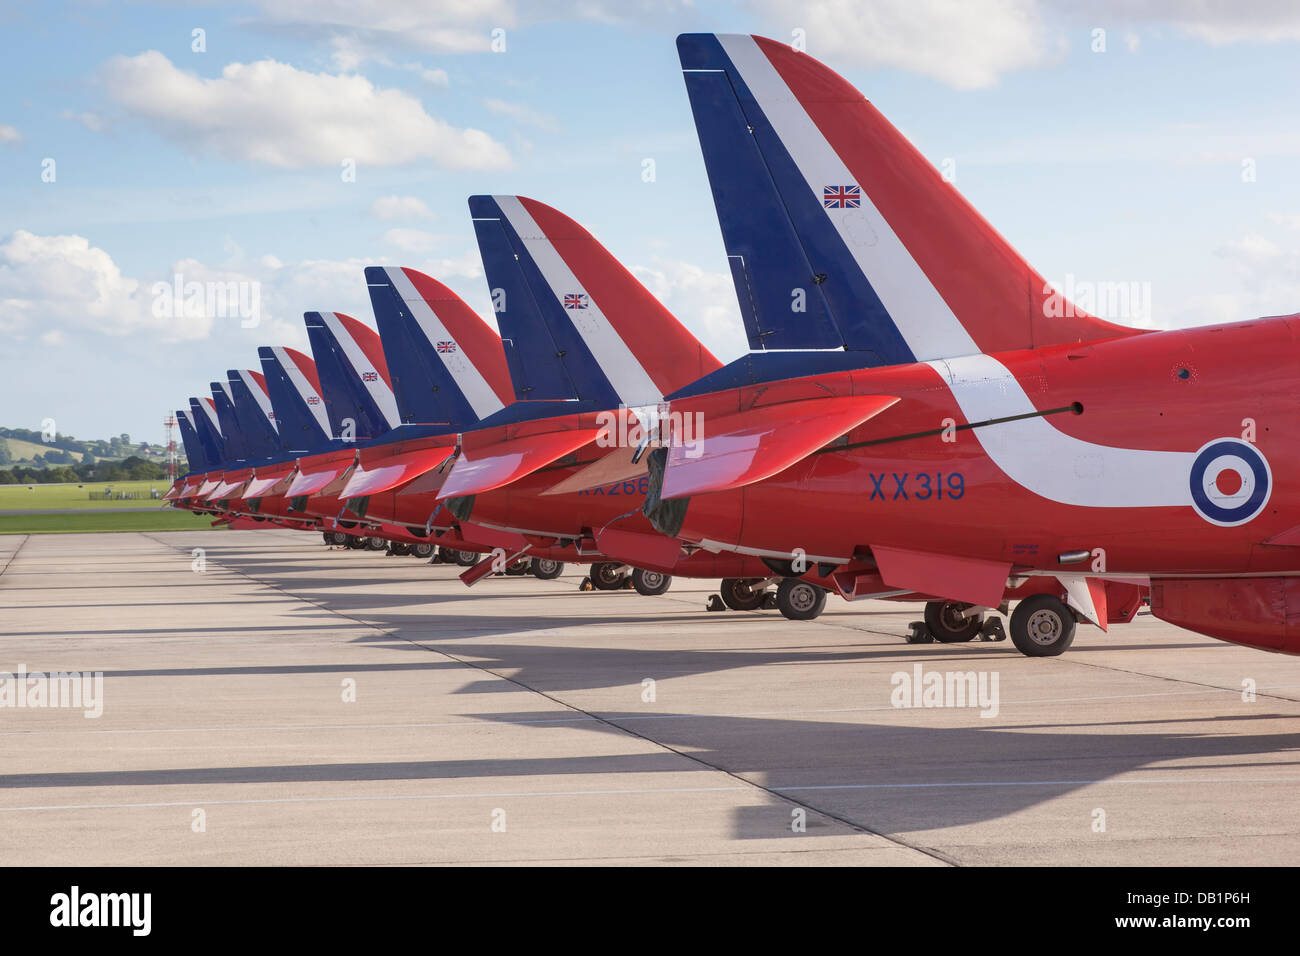 The tails of the RAF Red Arrow Hawks on the runway. - Stock Image